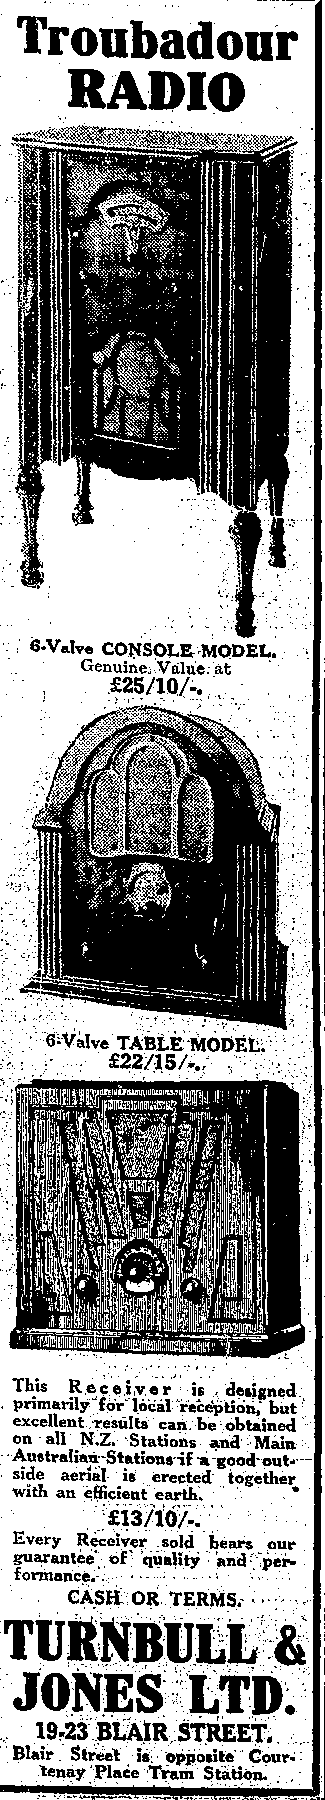 1932 Troubadour Table 6